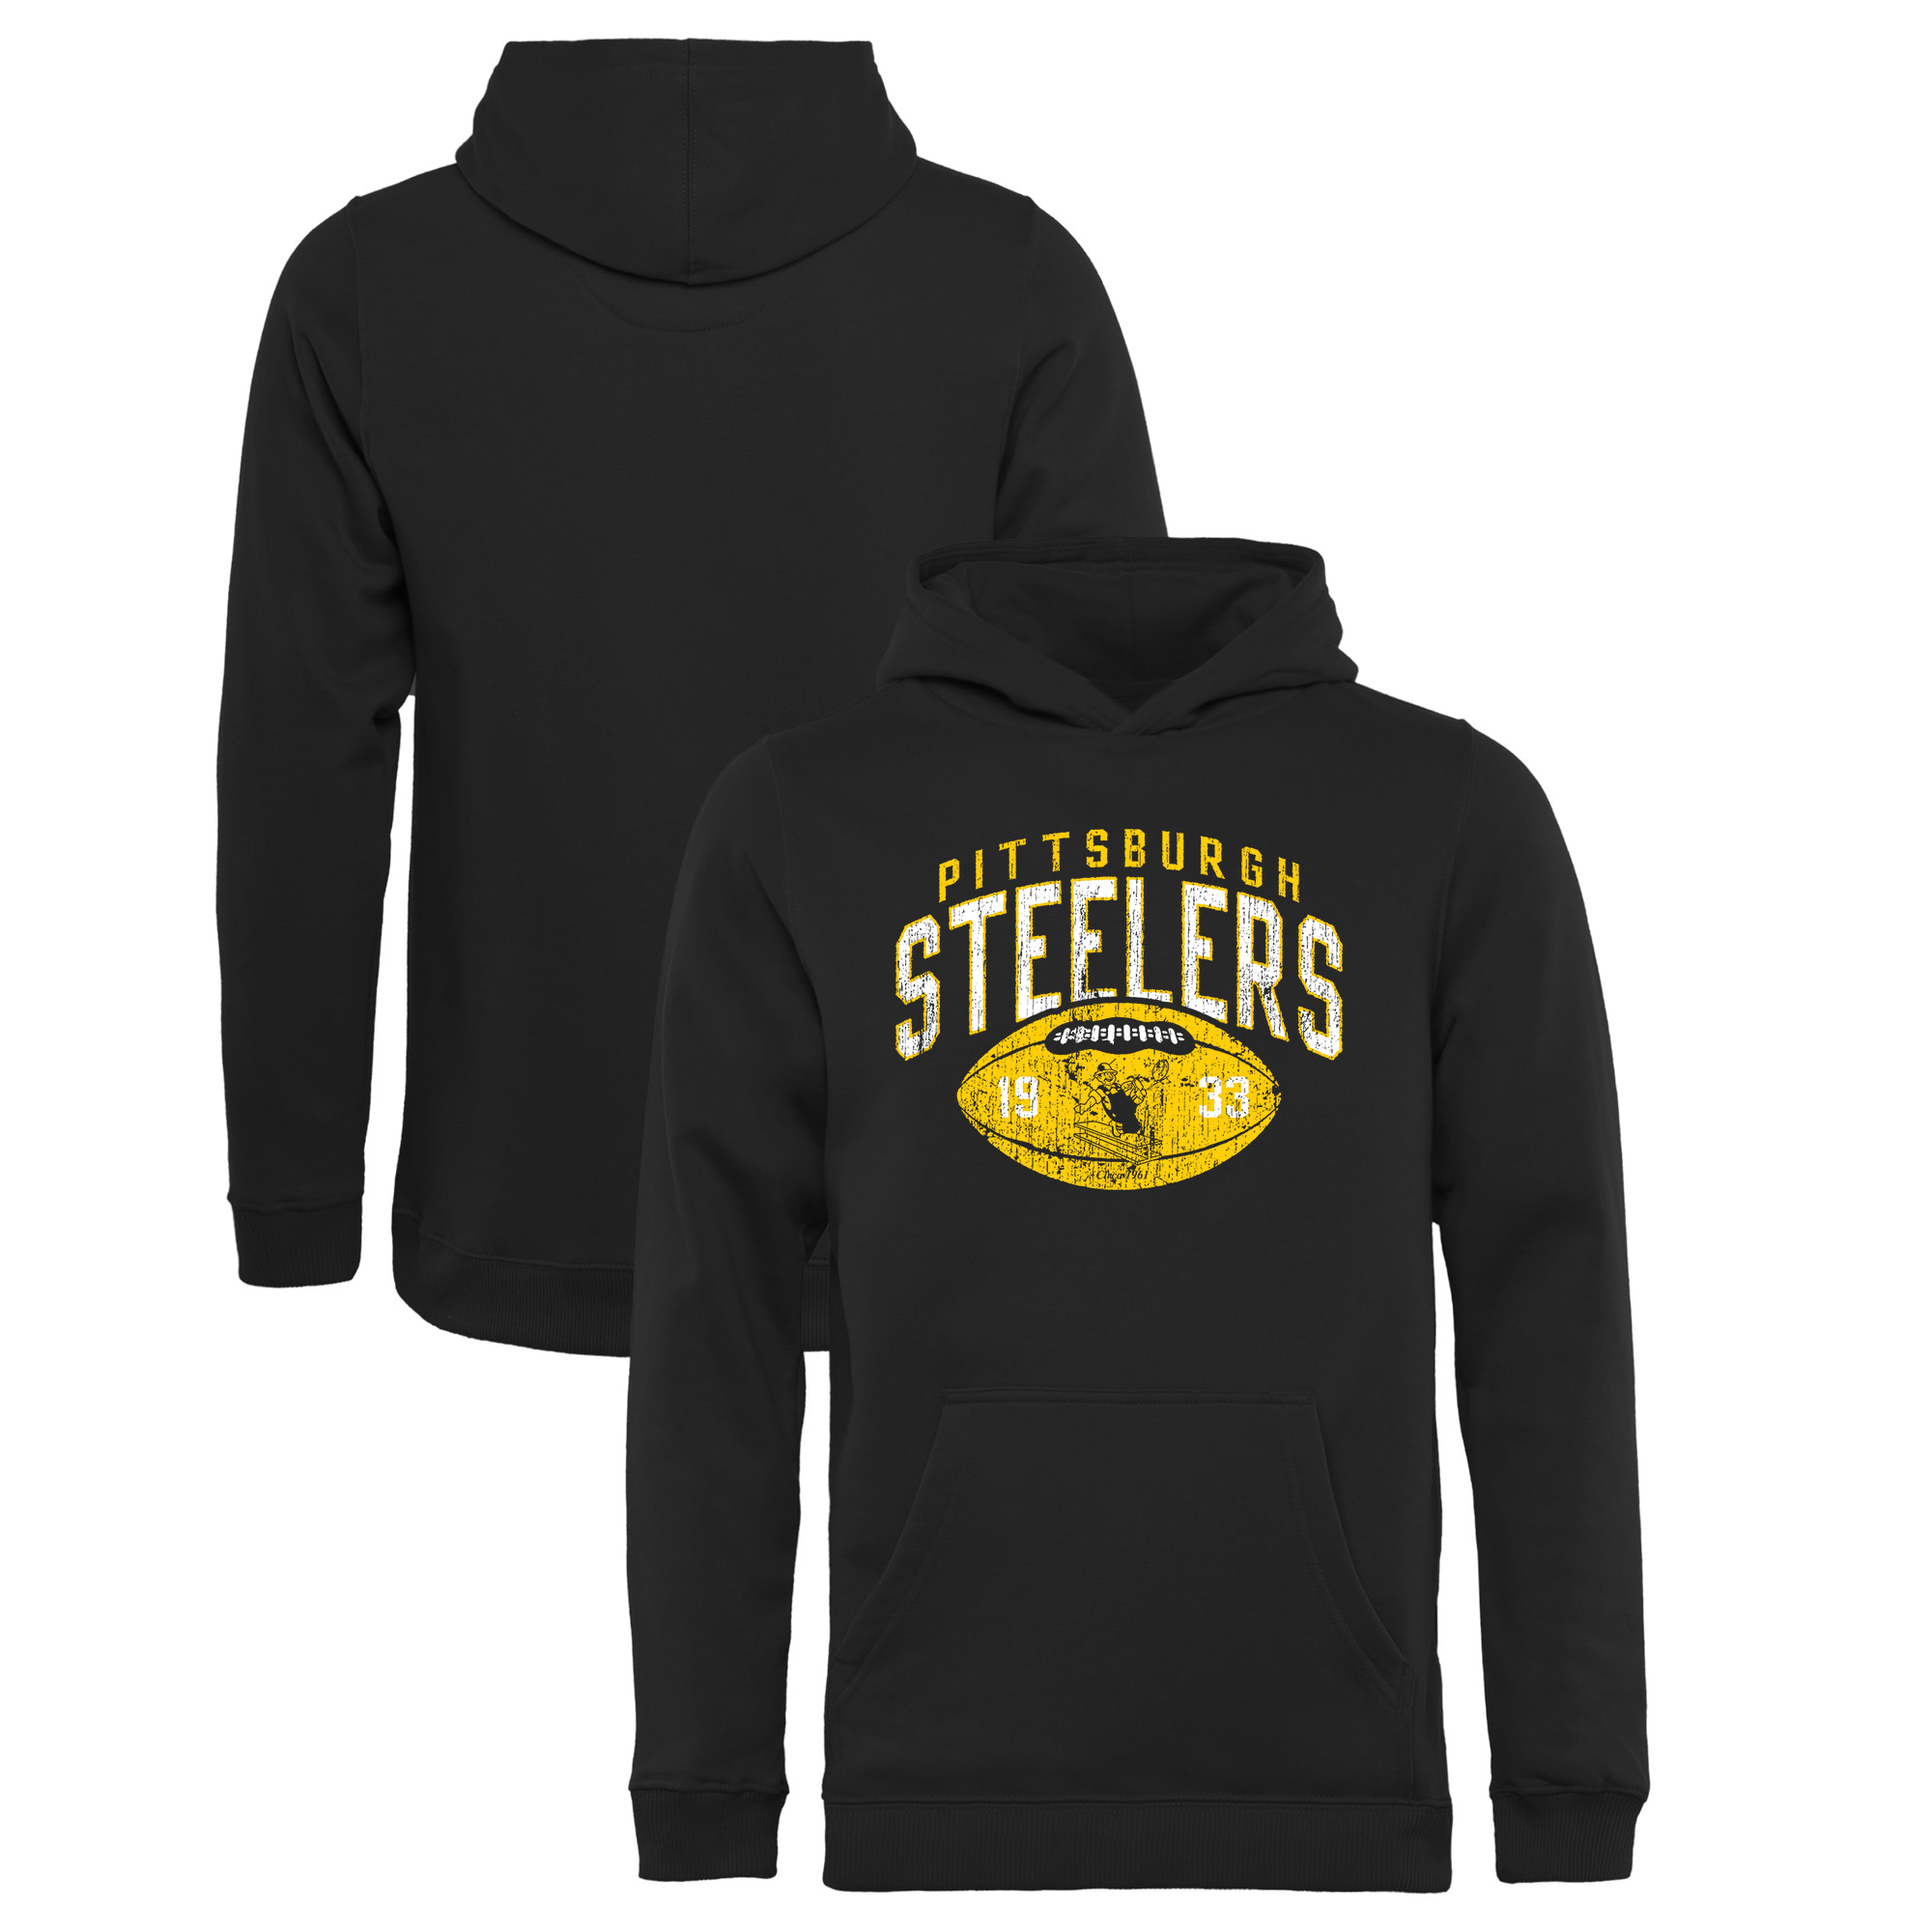 Pittsburgh Steelers NFL Pro Line by Fanatics Branded Youth Throwback Collection Coin Toss Pullover Hoodie - Black